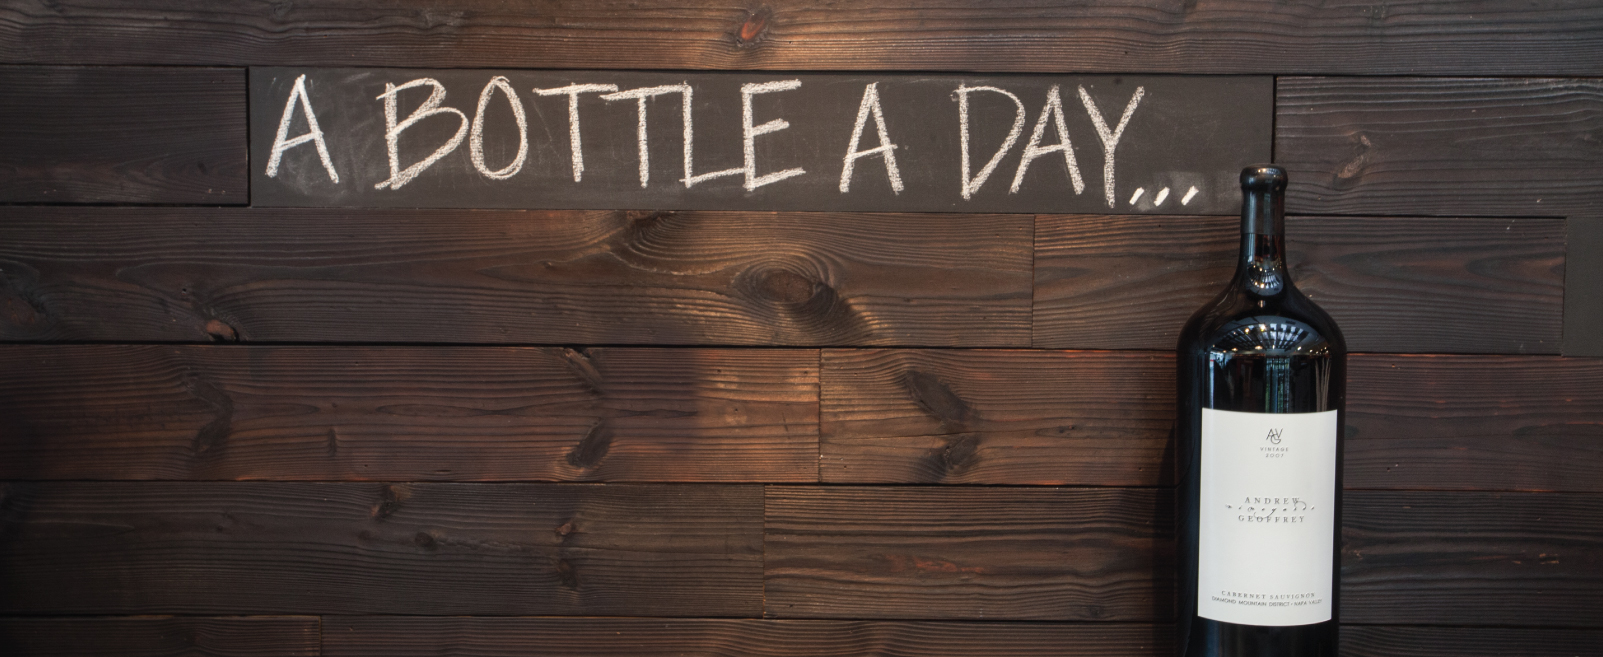 bottle-a_day.jpg